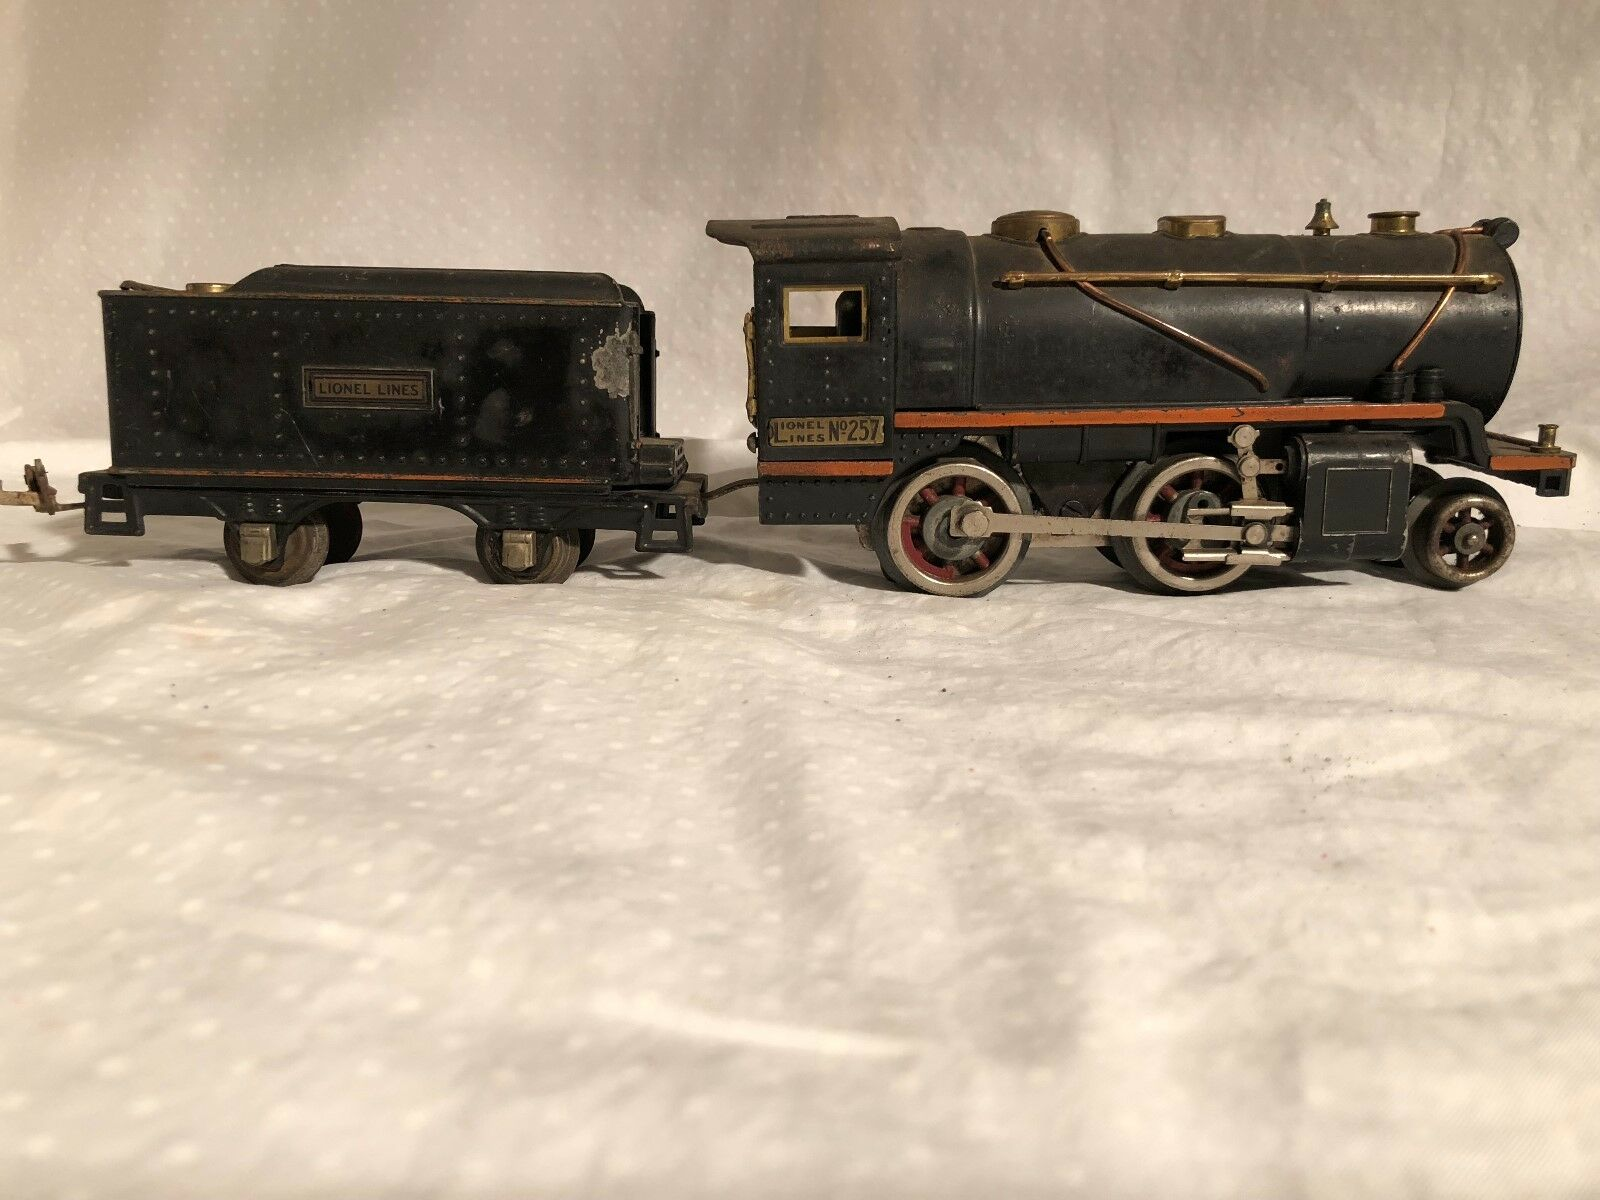 Lionel 257 Engine and Tender 1930s